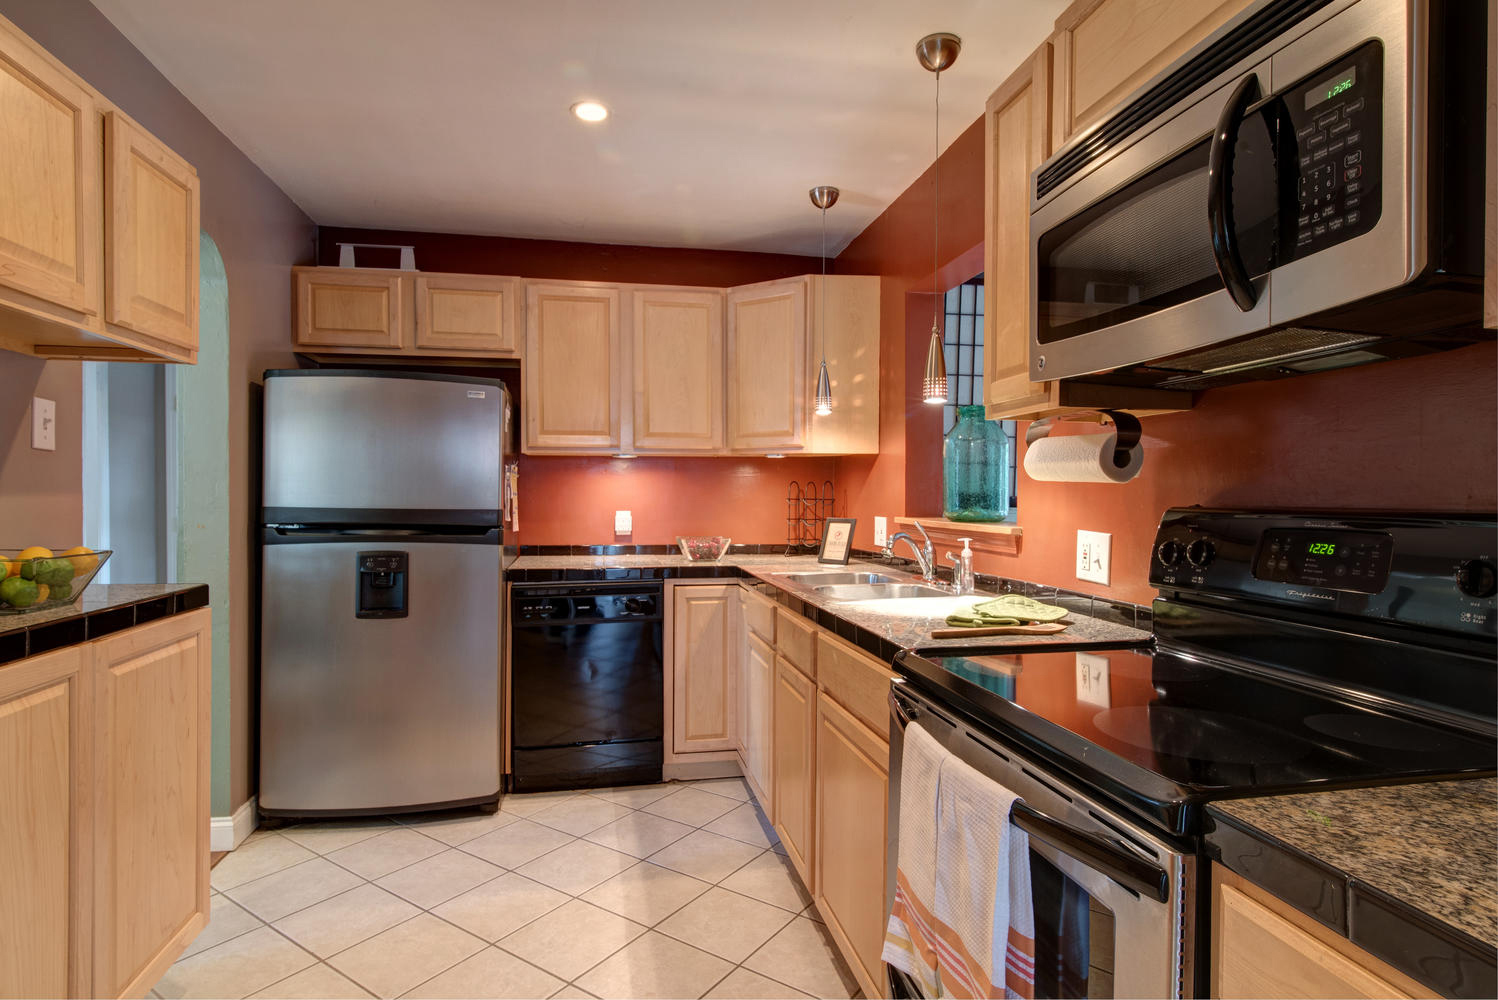 Imaginecozy Staging A Kitchen: Staged Cozy 1940's St. Pete Bungalow